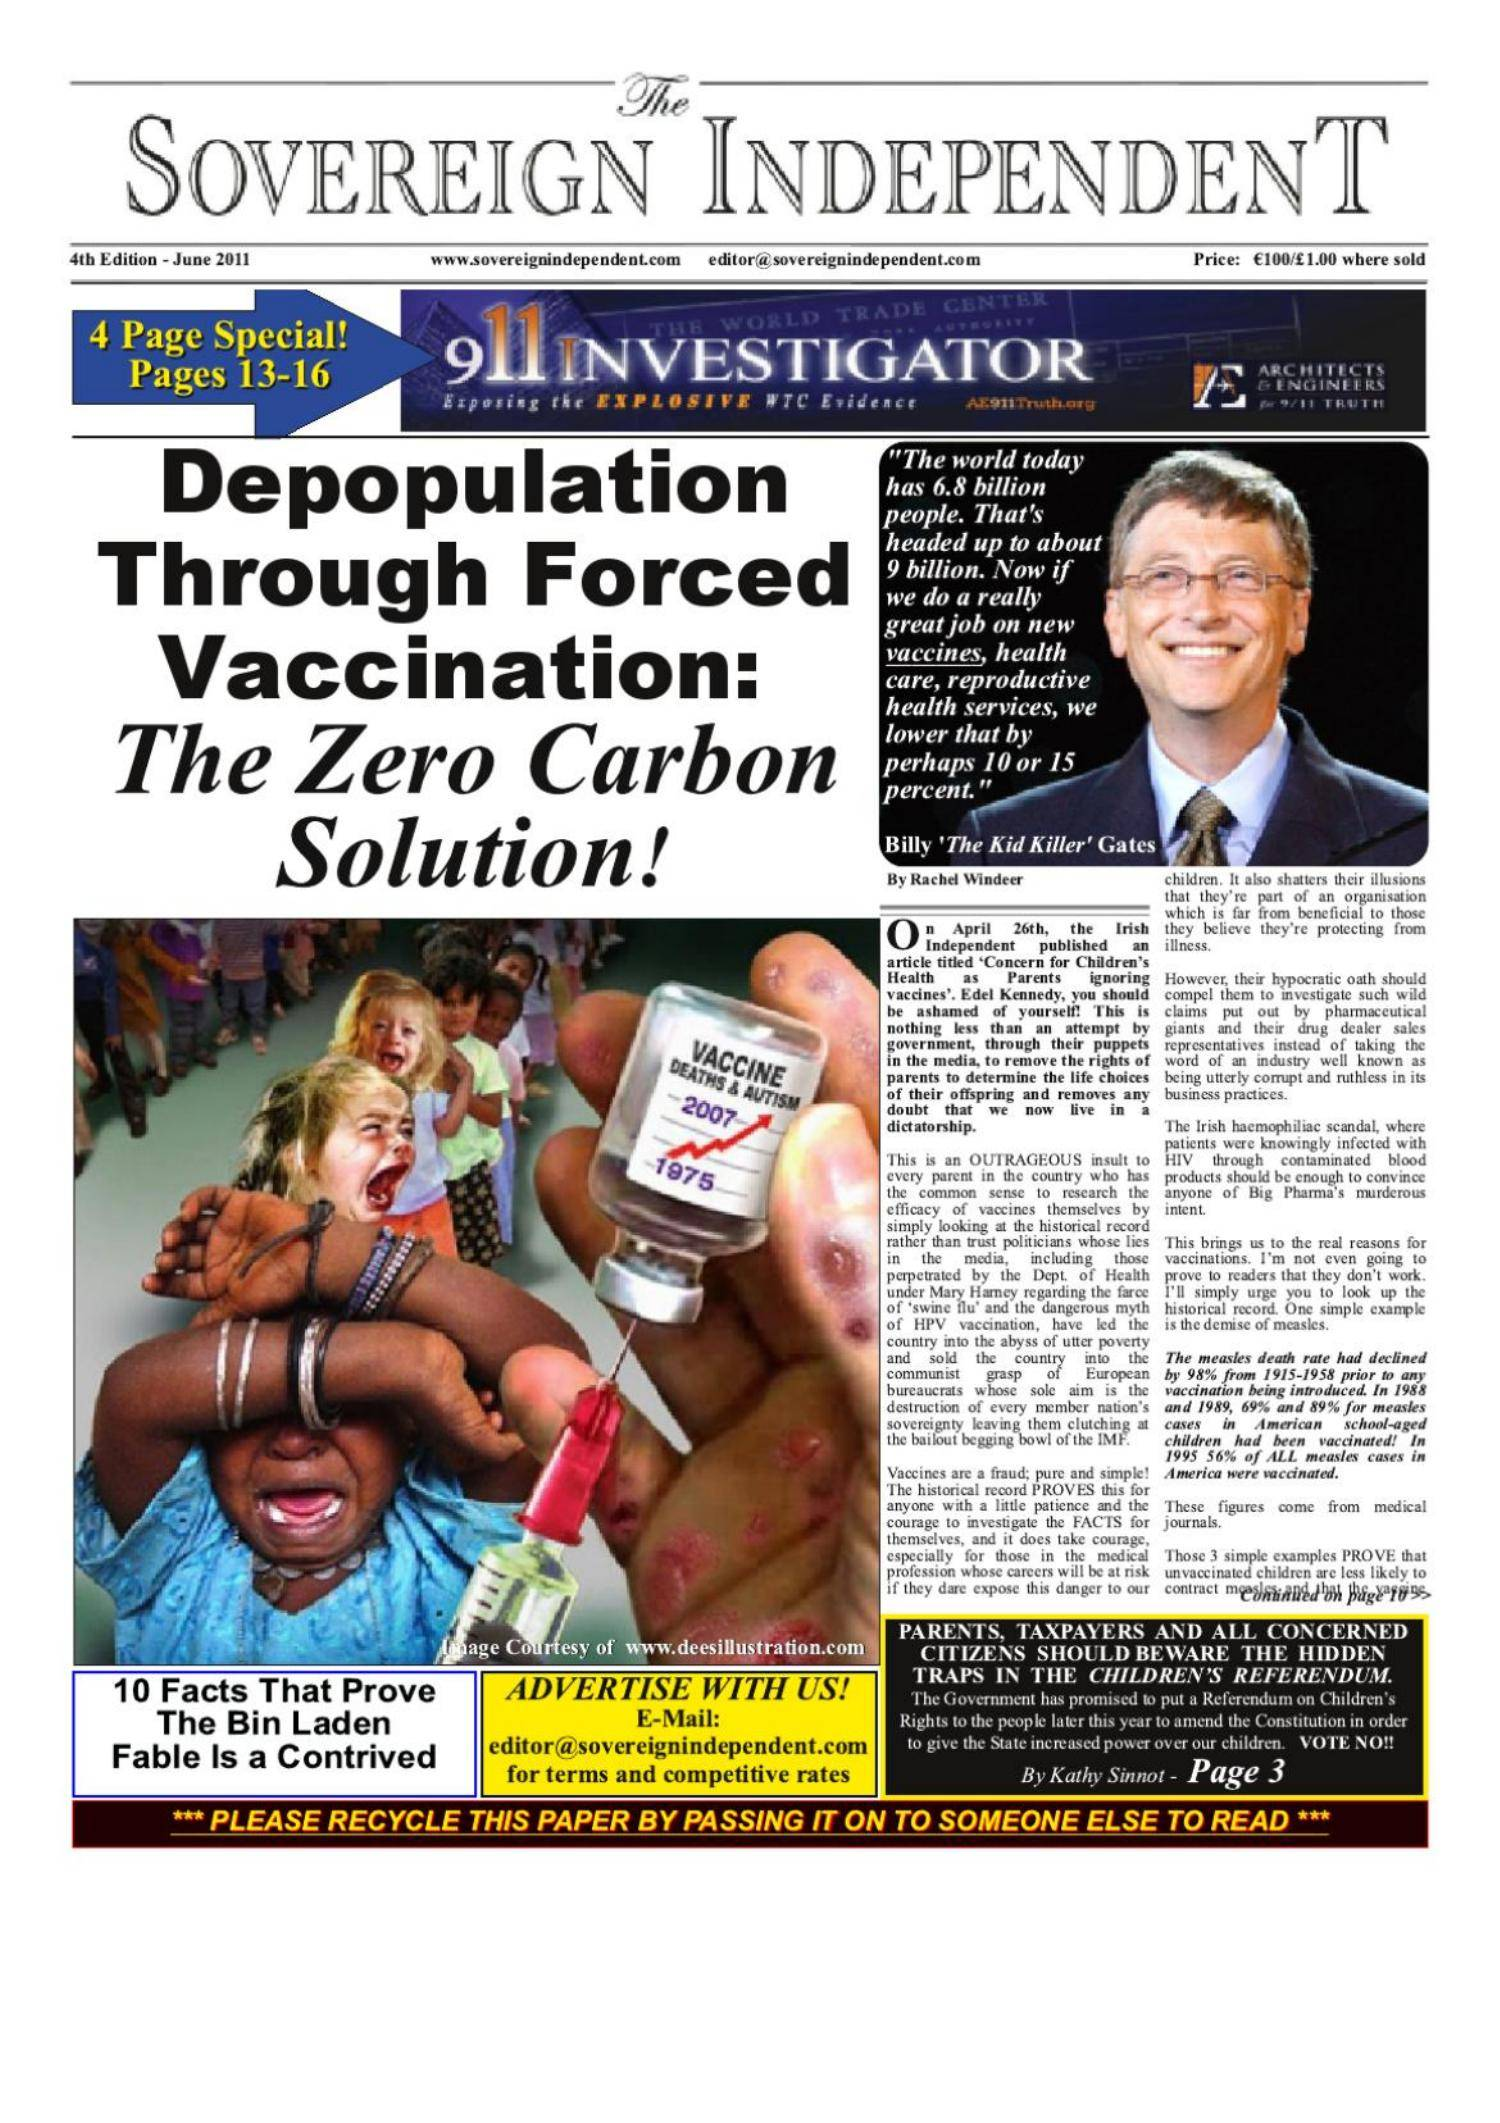 The Sovereign Independent - June 2011 (4th Edition).jpg